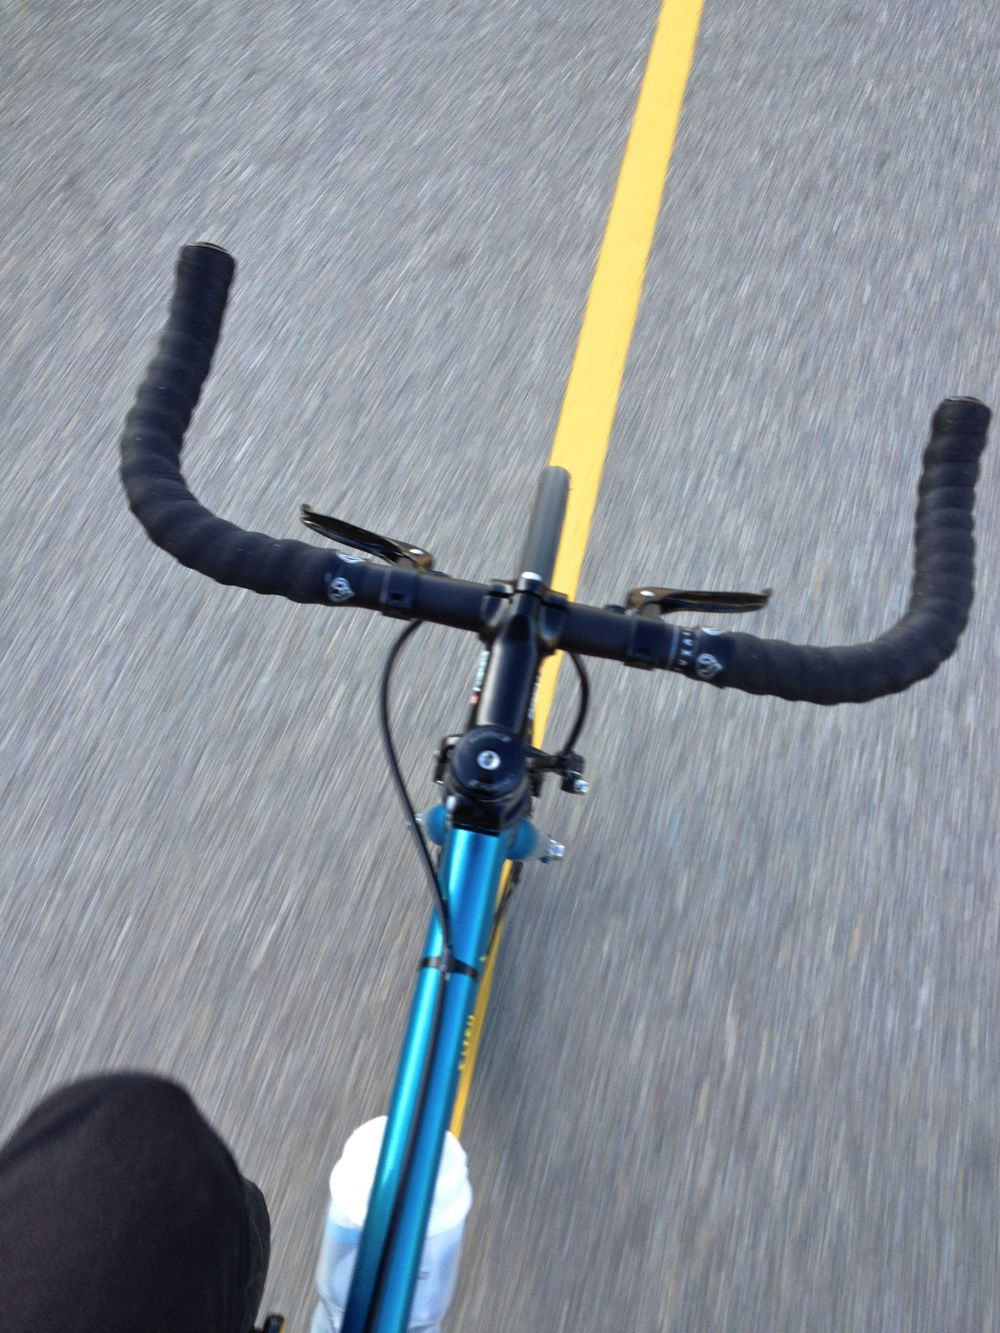 Riding my fixed gear bike along a designated bicycle path on the weekend.